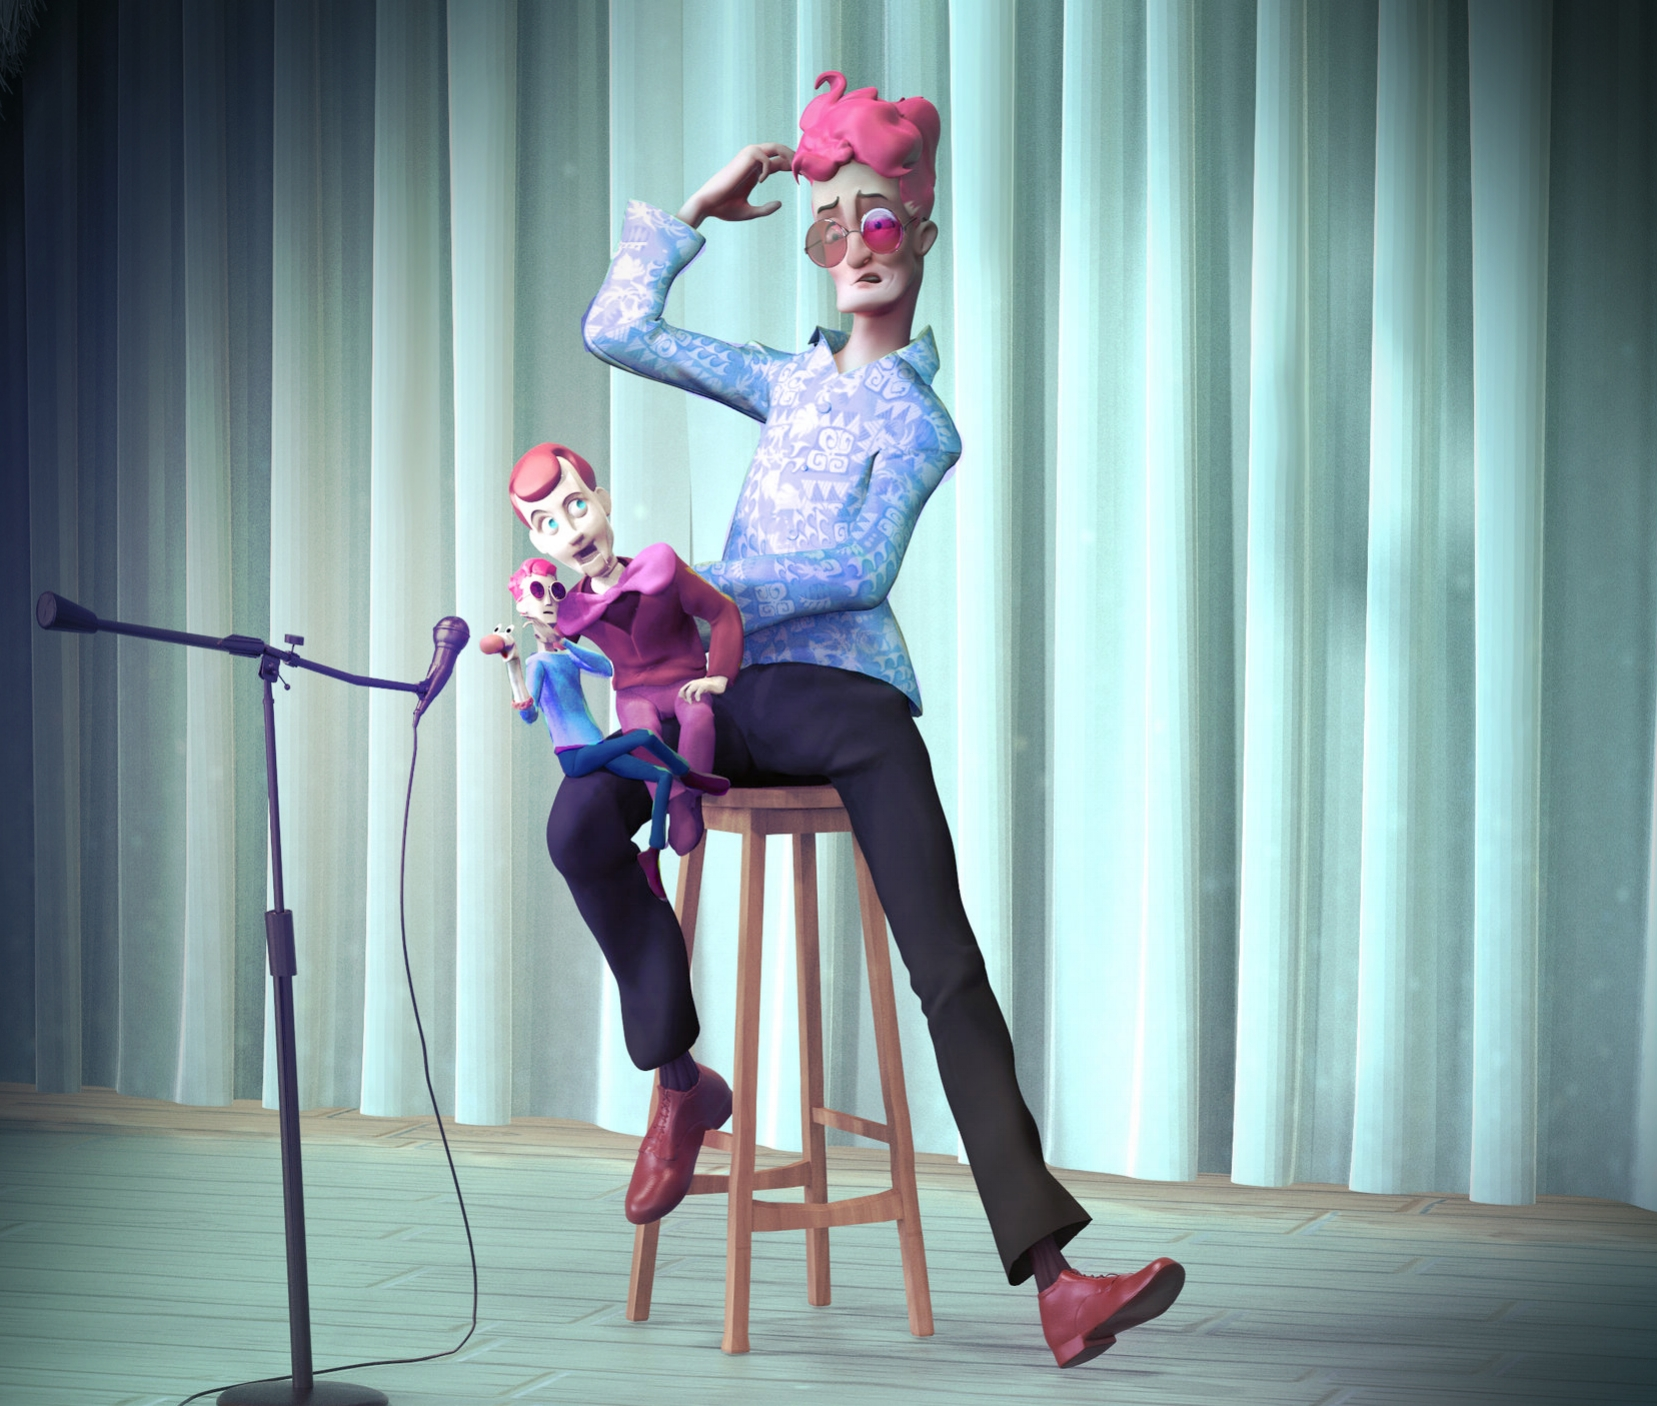 GILBERT THE VENTRILOQUIST - Sculpted with Zbrush, textured in Photoshop and rendered with Keyshot